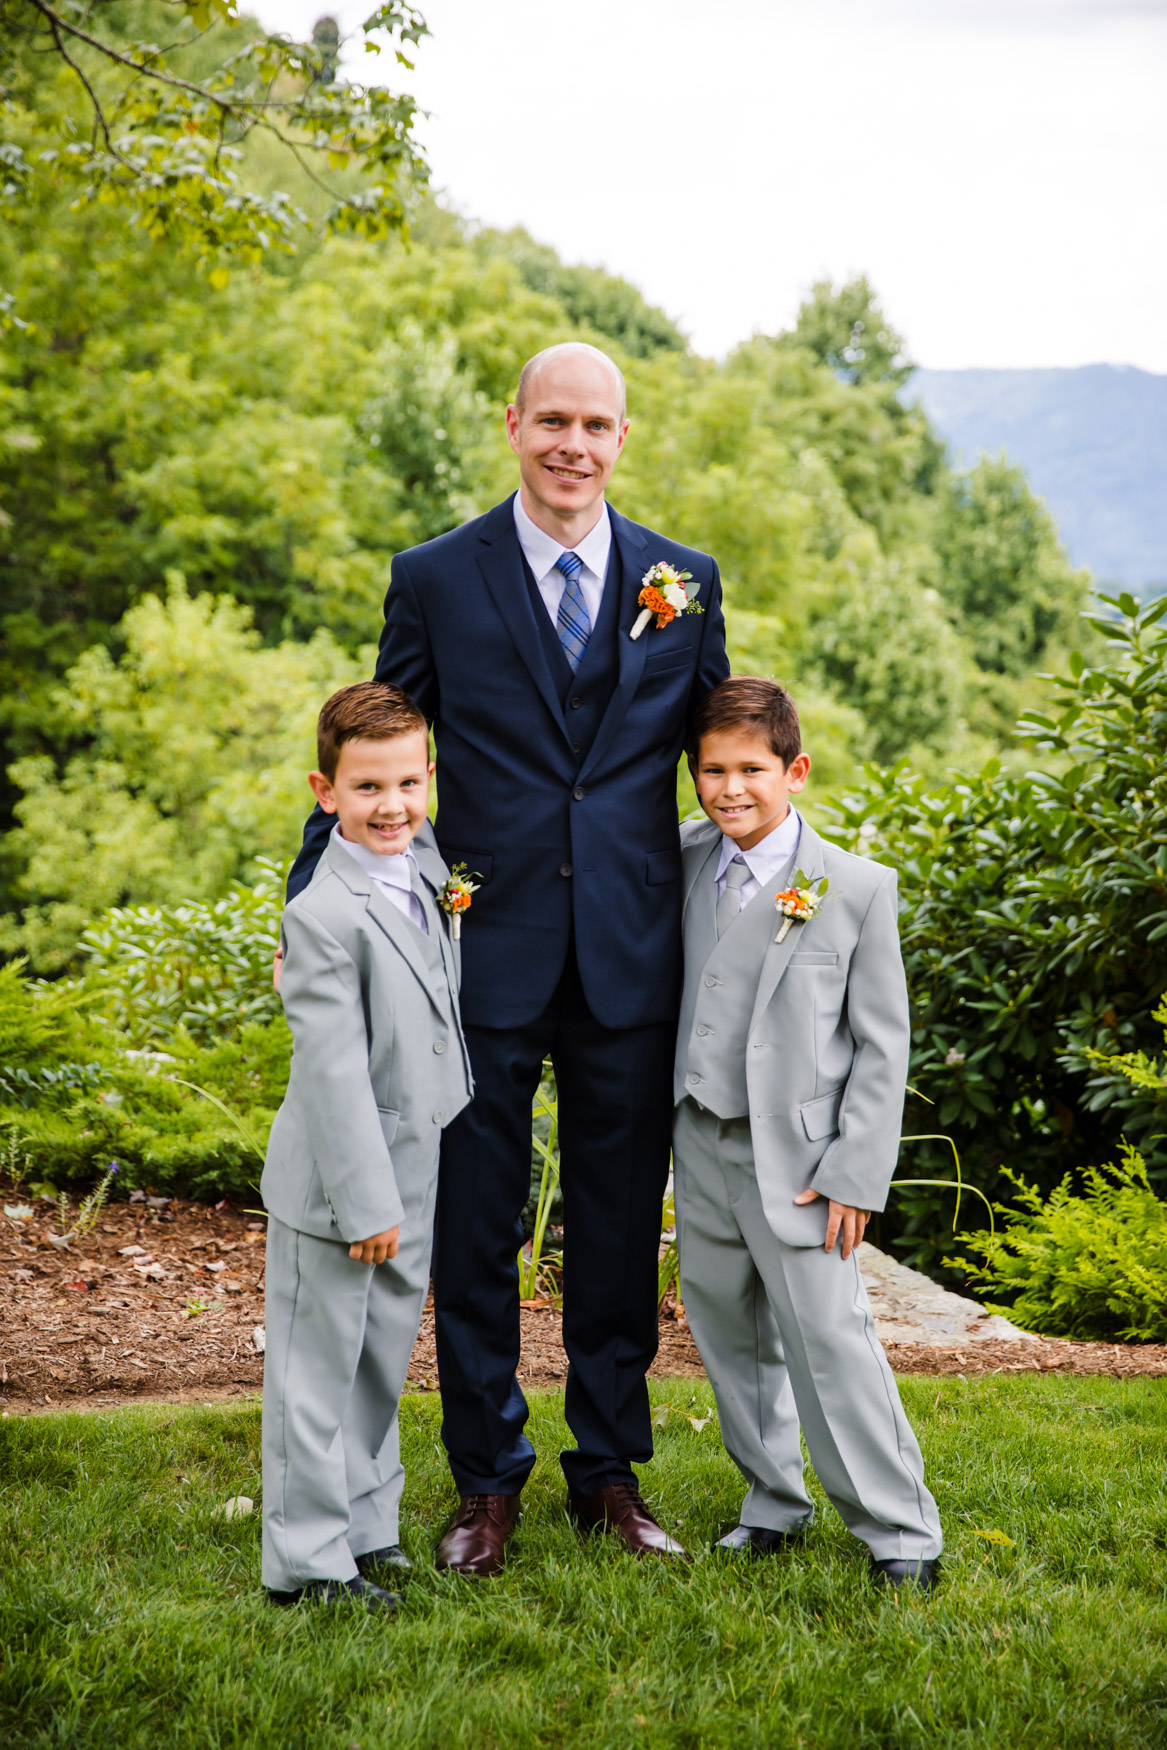 Groom and Ring Bearers Waynesville NC Wedding Photography Inn at Tranquility Farm